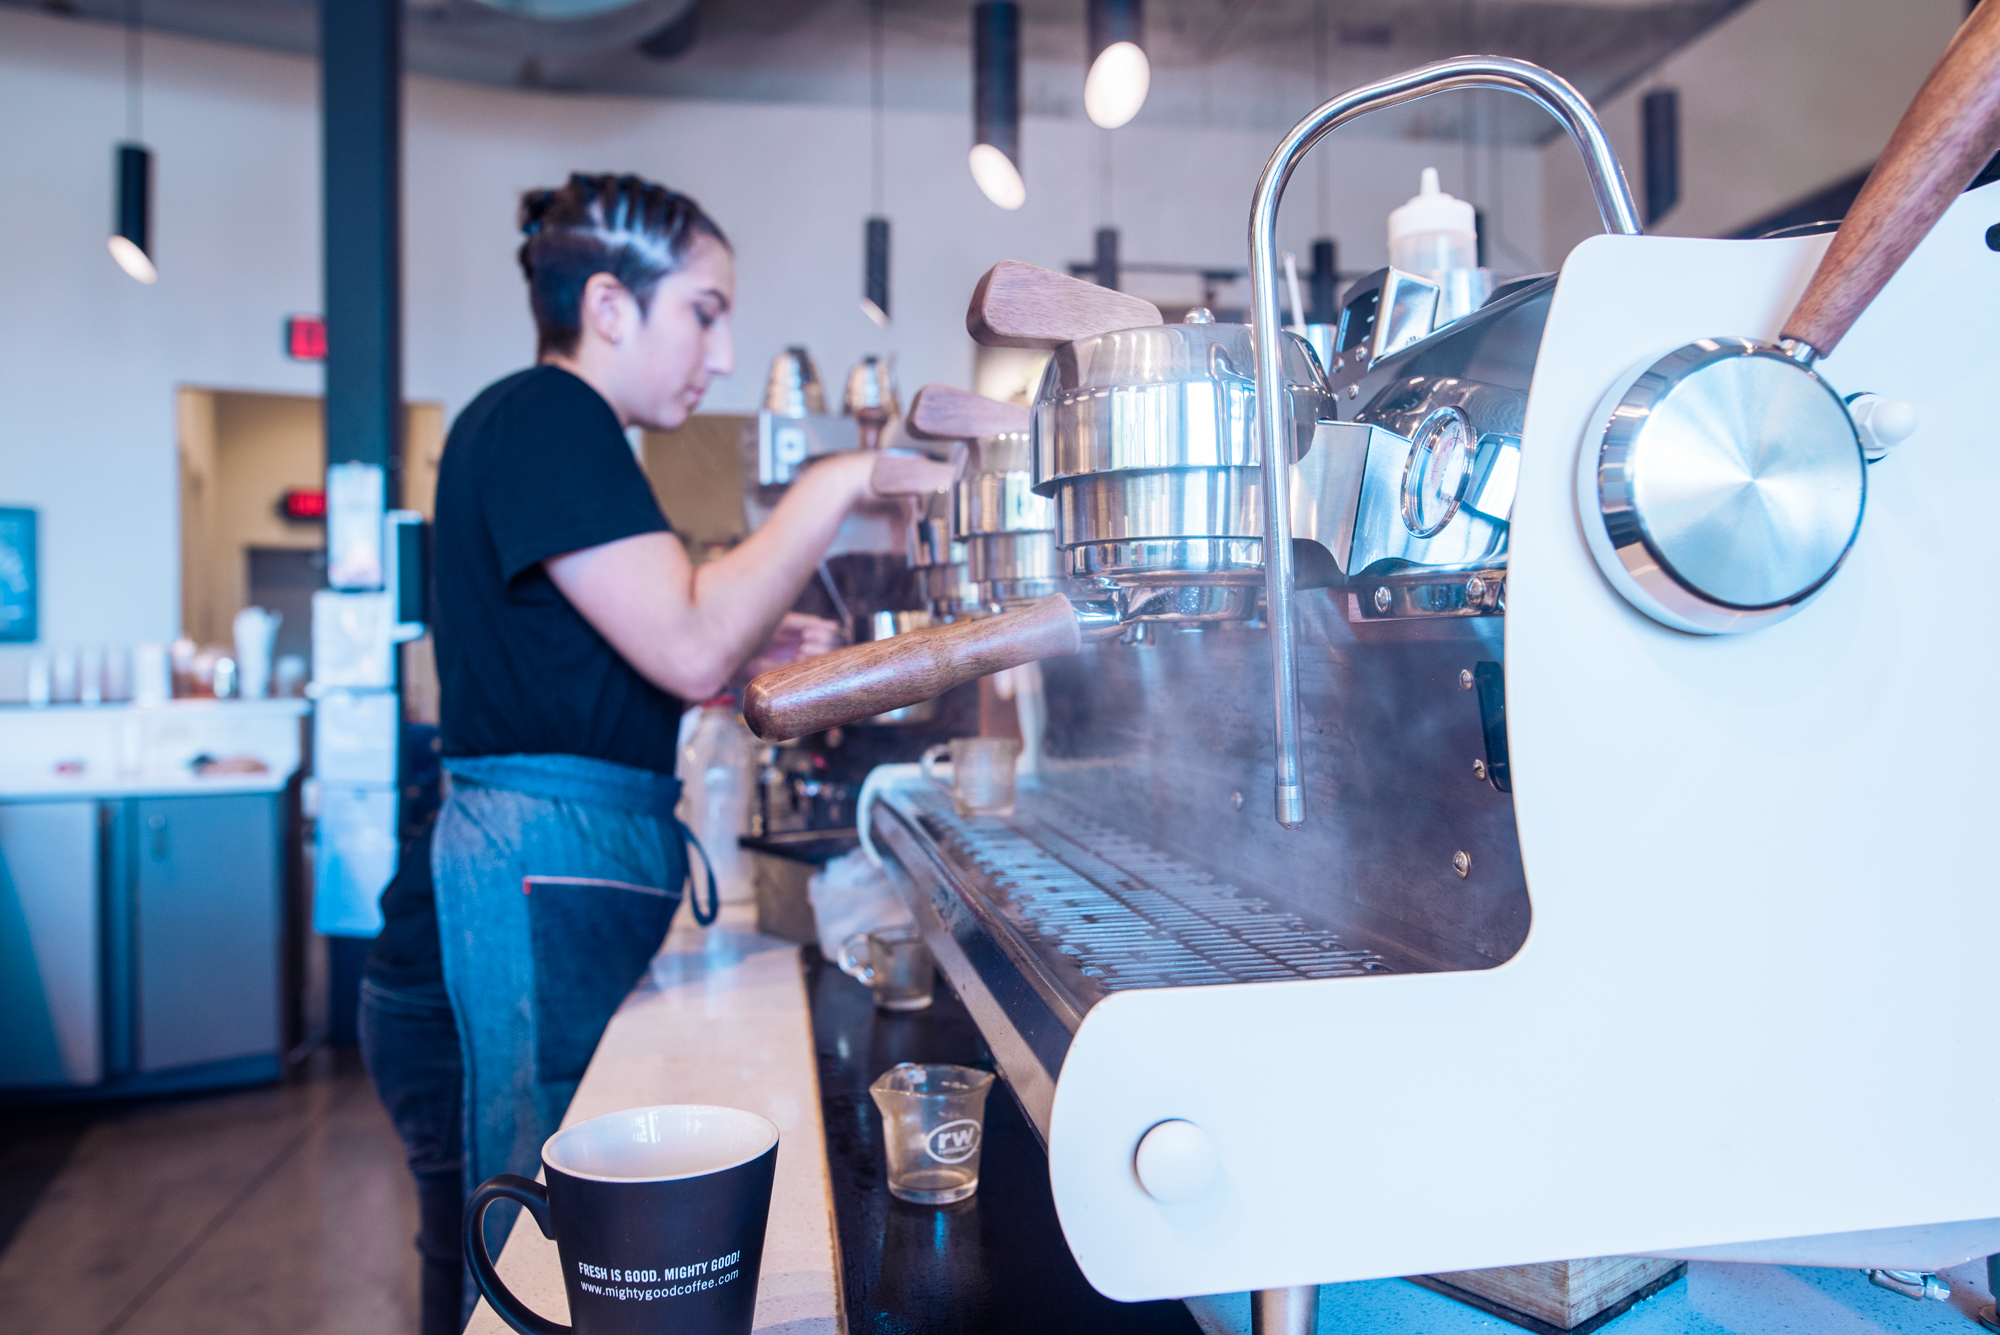 Mighty_Good_Coffee_Arbor_Hills_Photography_By_Katie_Alexis-94.jpg